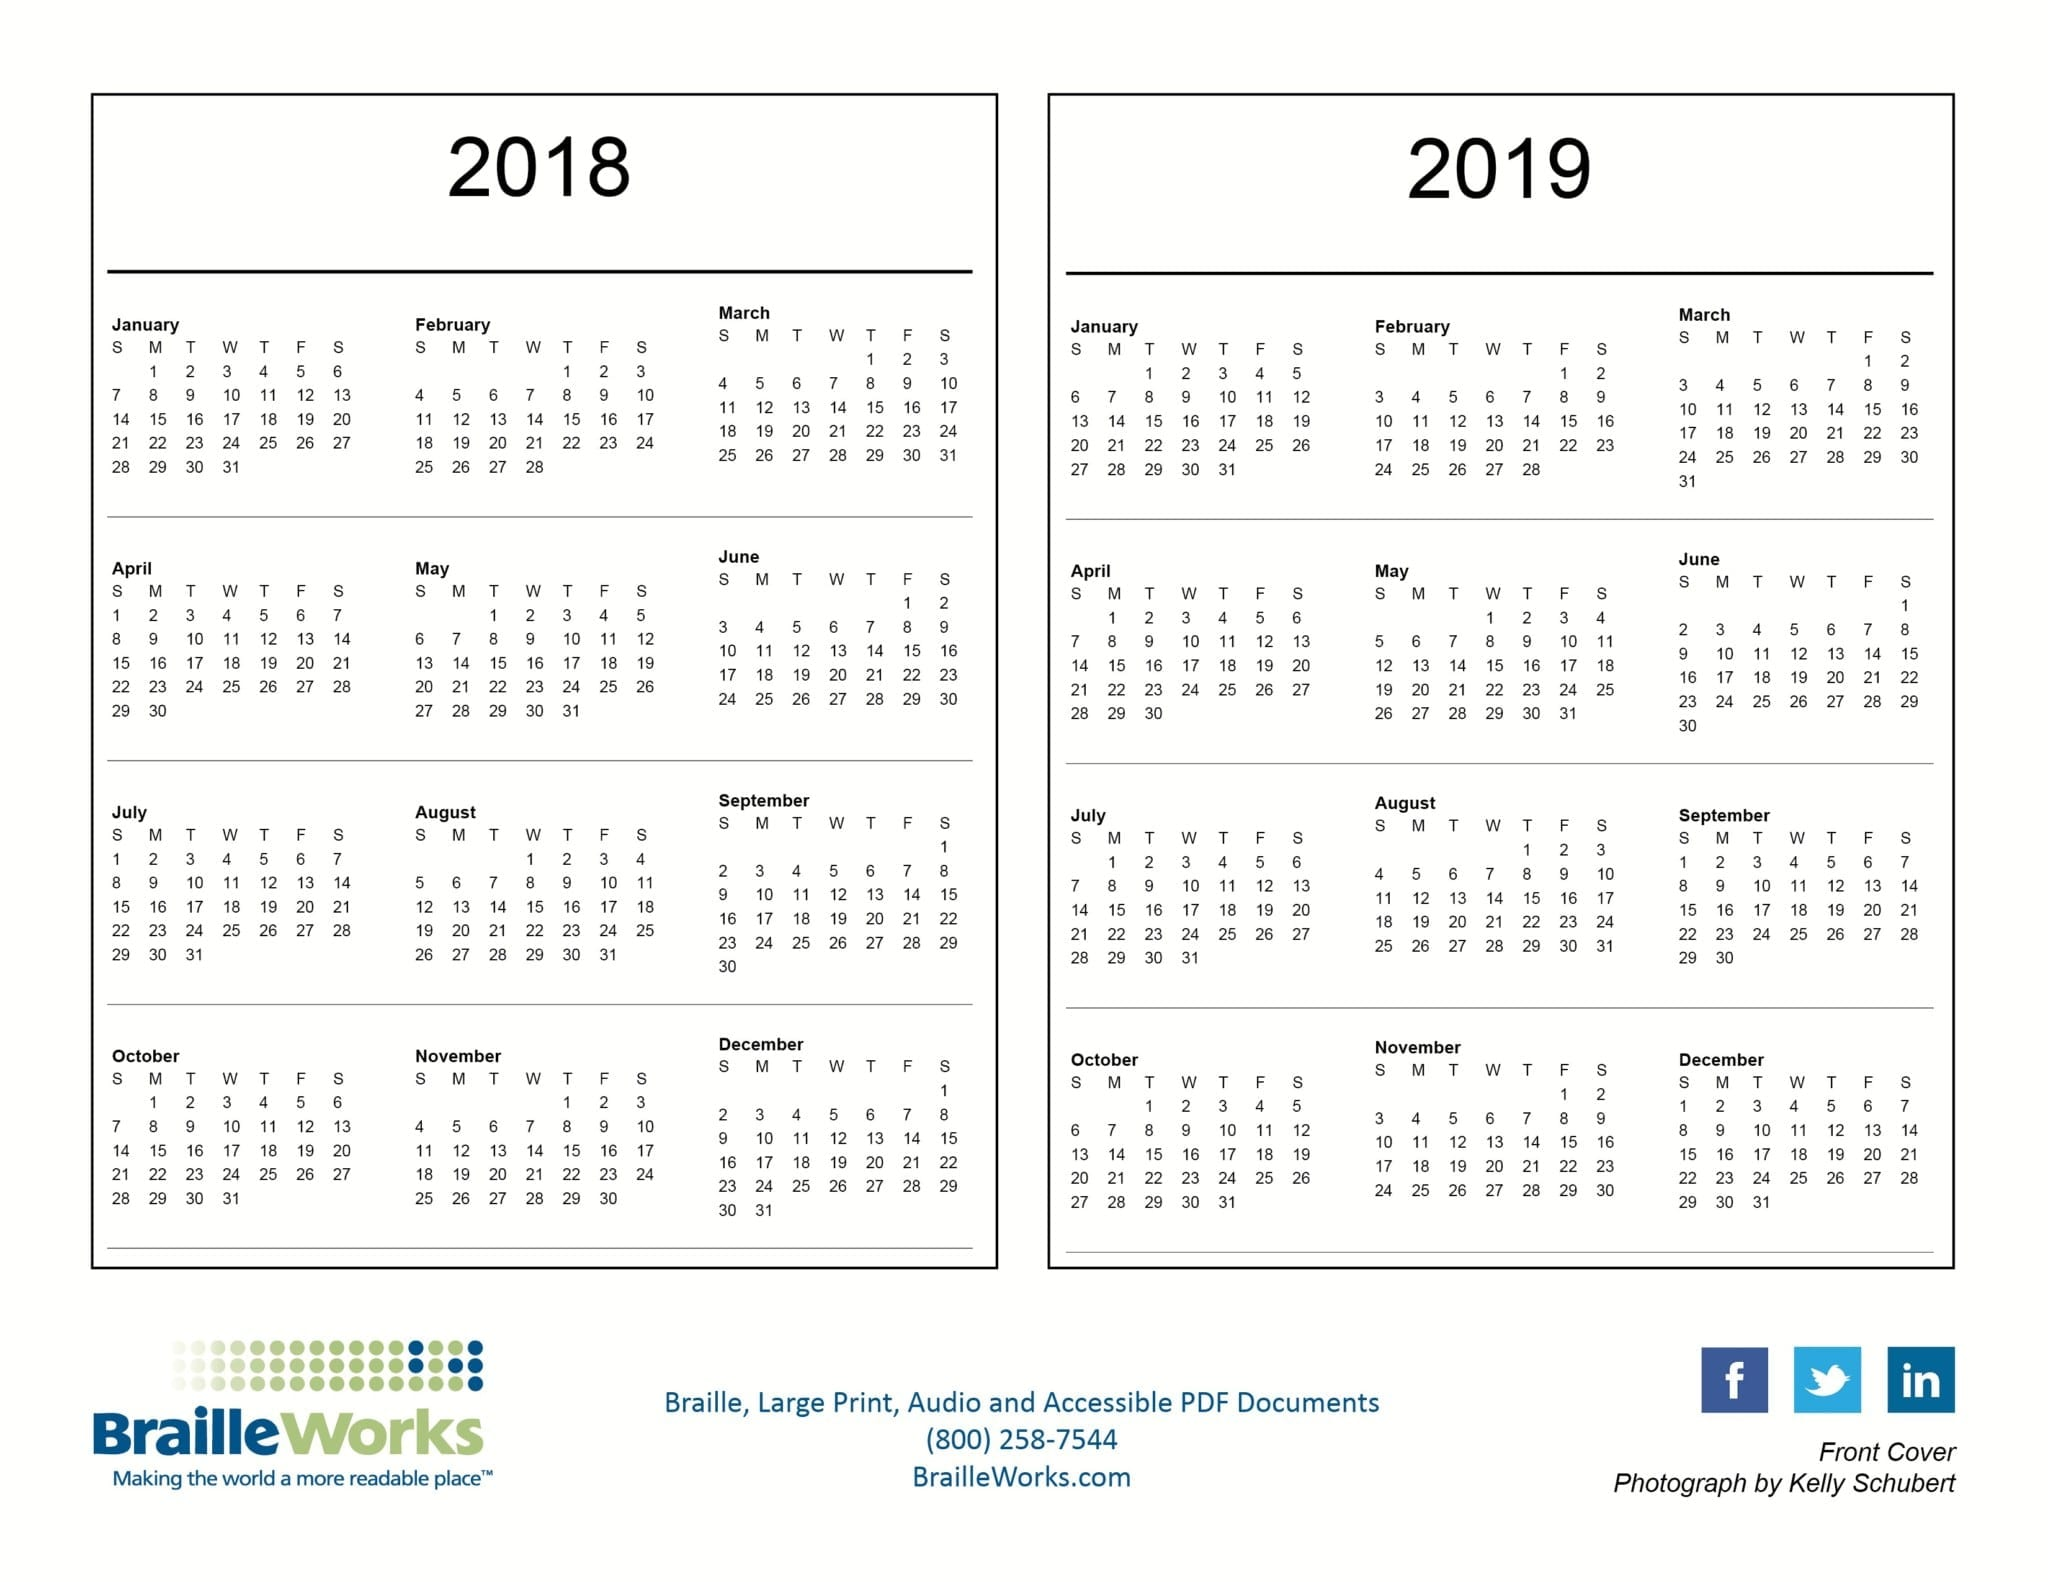 New York School Year Calendar In Florida Nyc 2017 18 School Year Calendar First Day Of School Braille Calendars Attractive And Accessible Braille Works